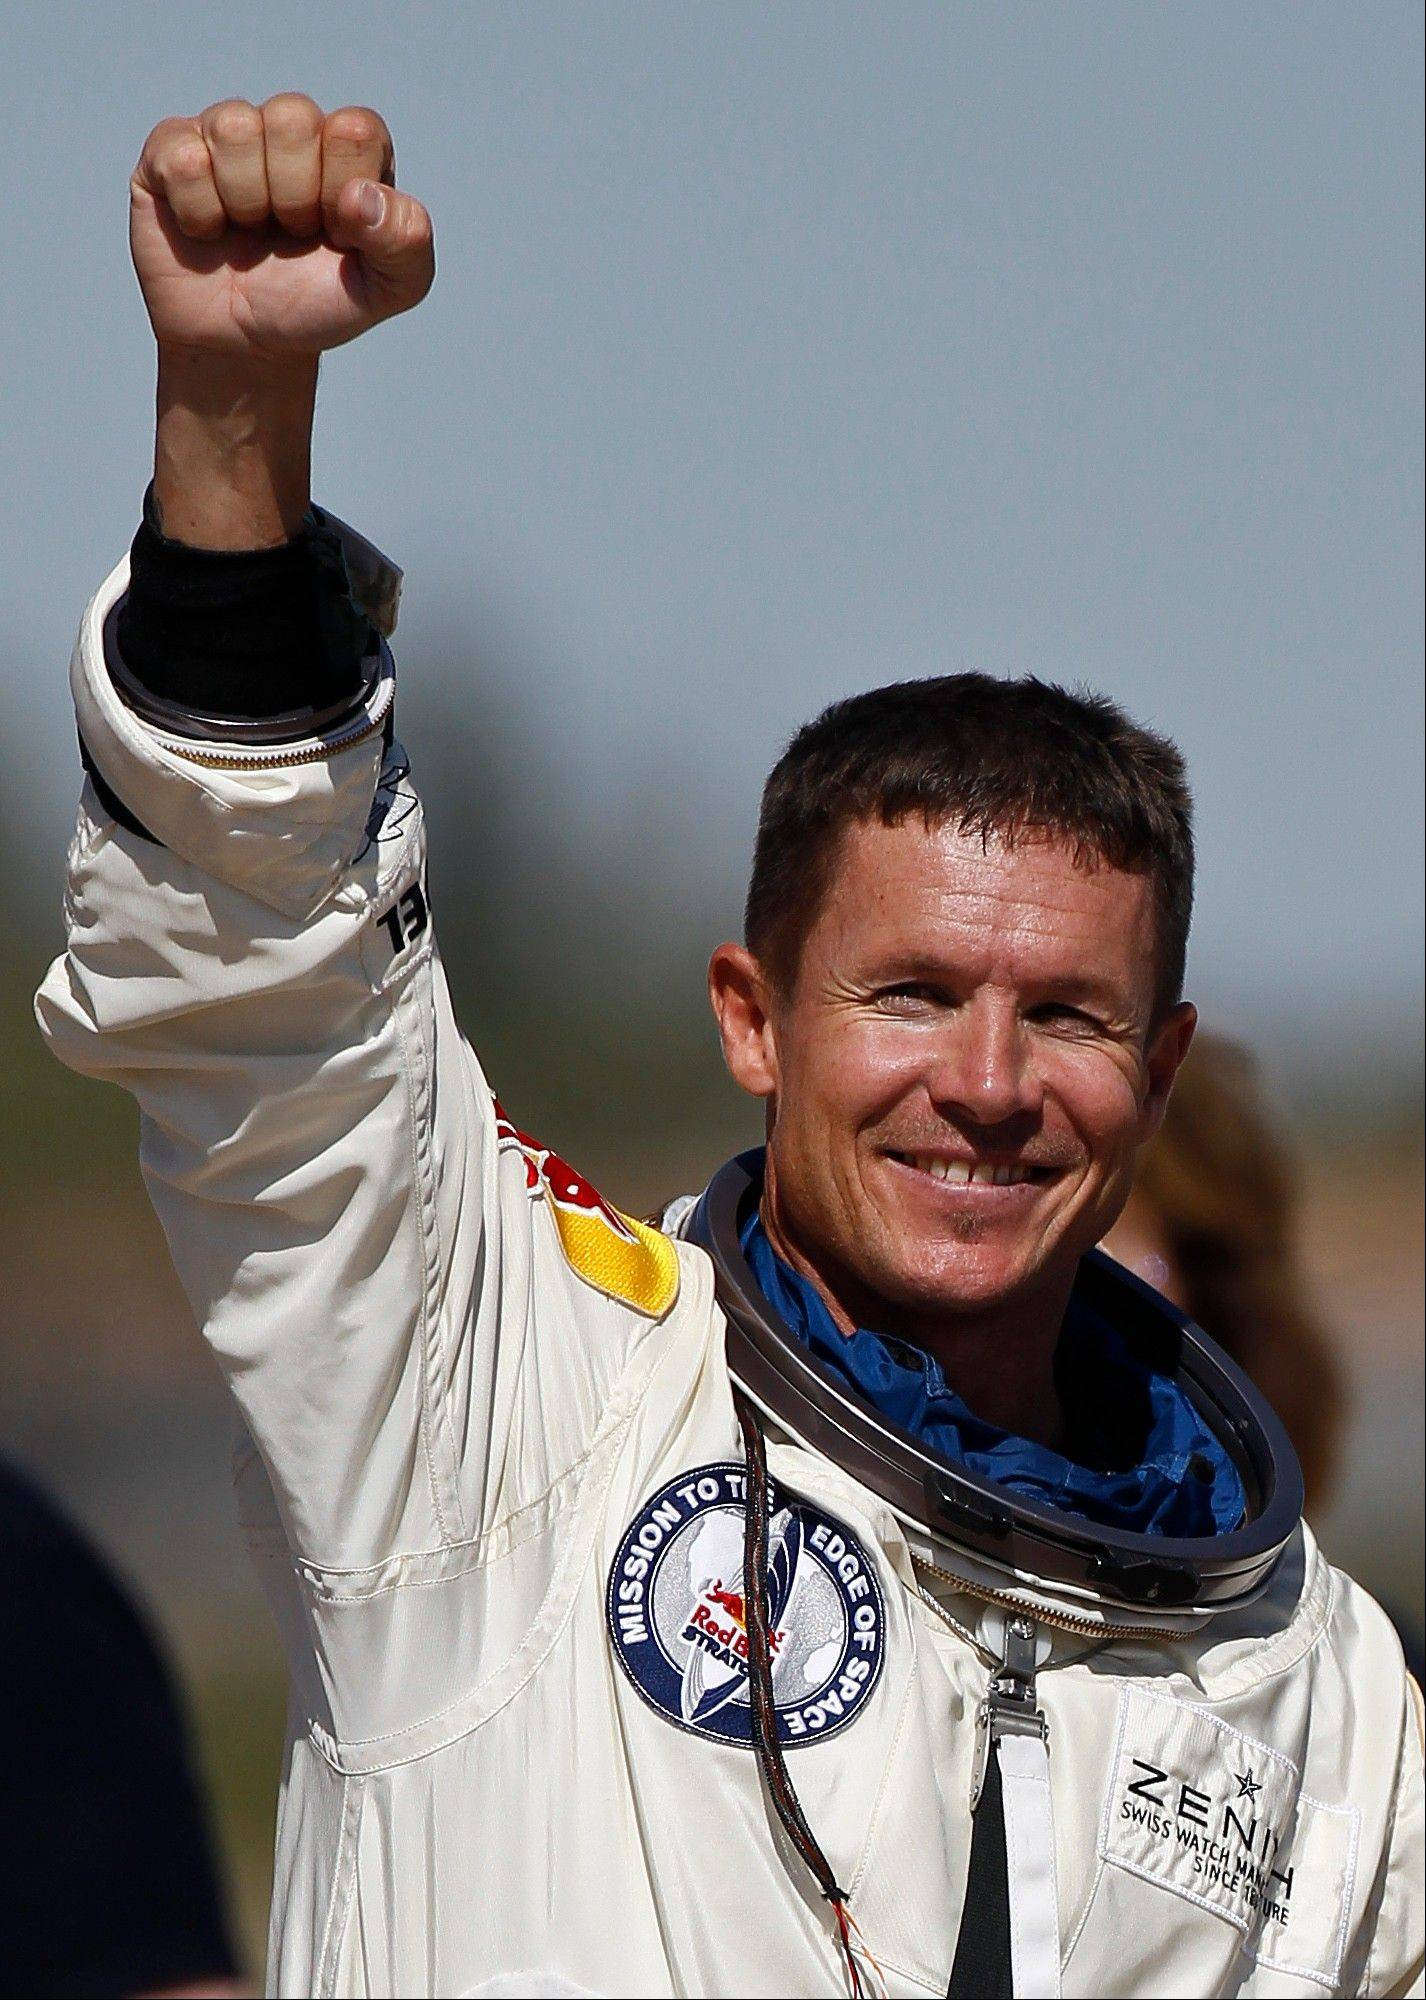 Felix Baumgartner, of Austria, pumps his fist to the crowd after successfully jumping from a space capsule lifted by a helium balloon at a height of just over 128,000 feet above the Earth's surface, Sunday, Oct. 14, 2012, in Roswell, N.M. Baumgartner came down safely in the eastern New Mexico desert minutes about nine minutes after jumping from his capsule 128,097 feet, or roughly 24 miles, above Earth.